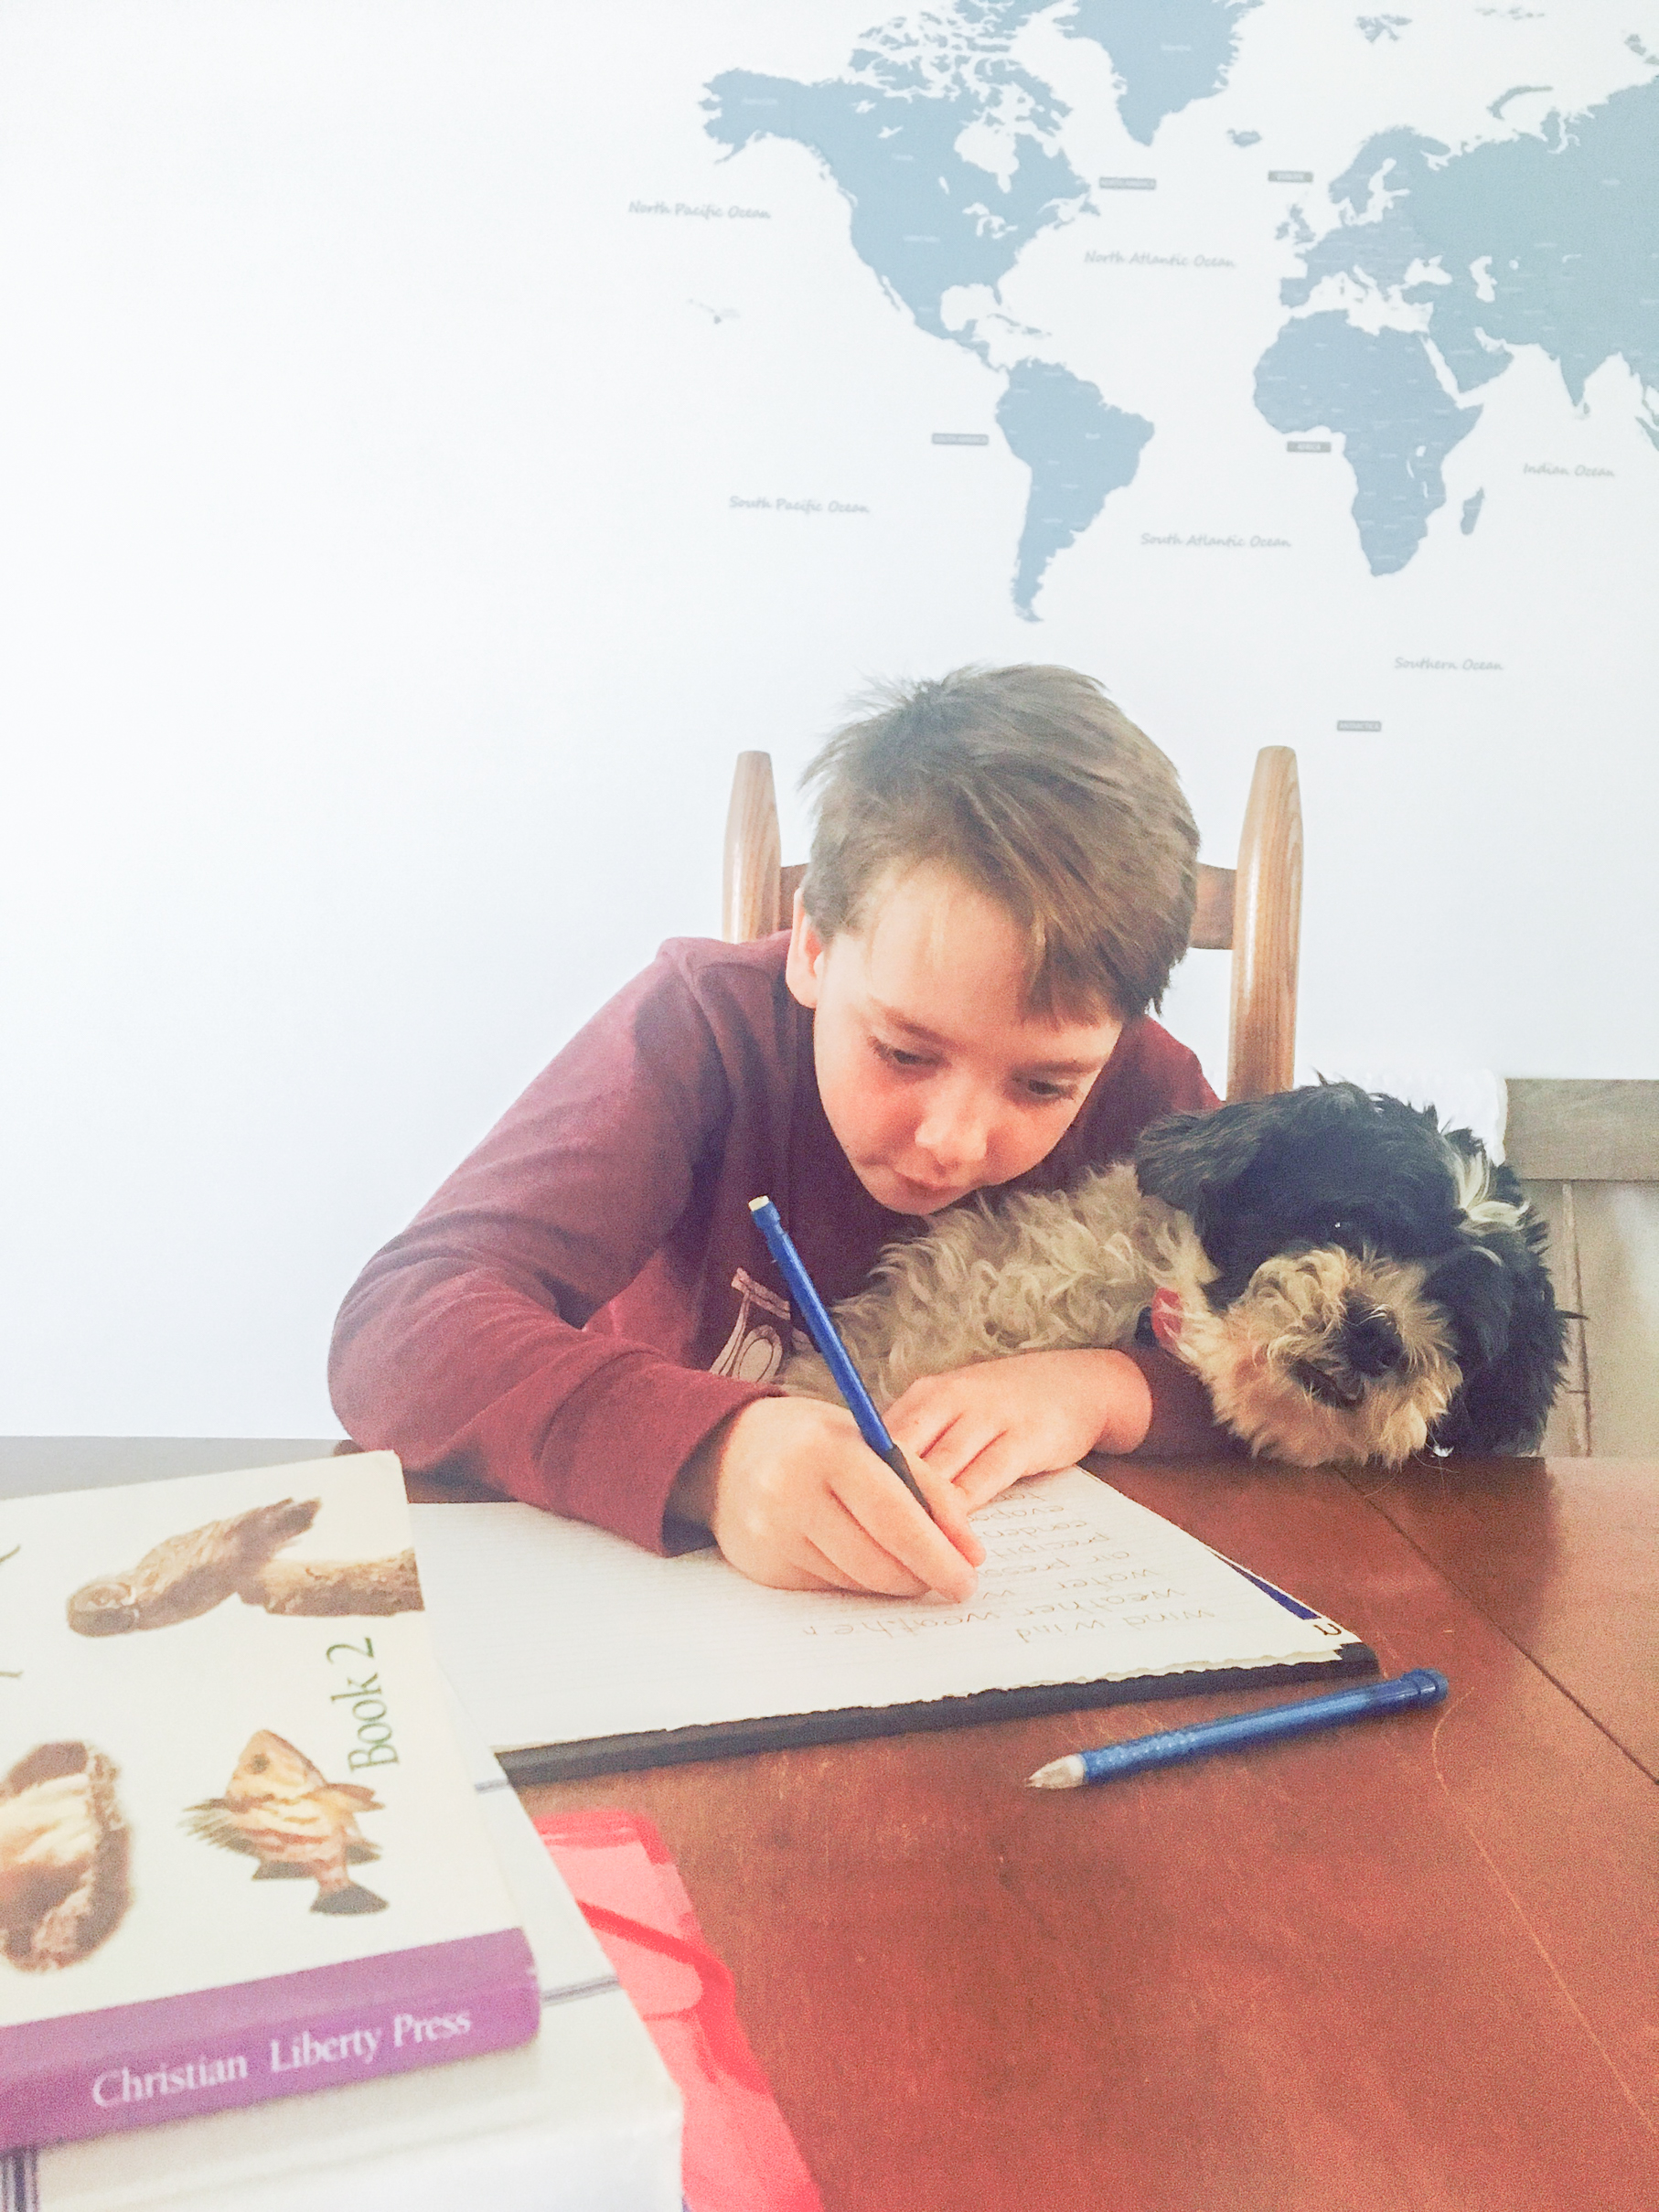 10 Things I learned after 17 years of homeschooling